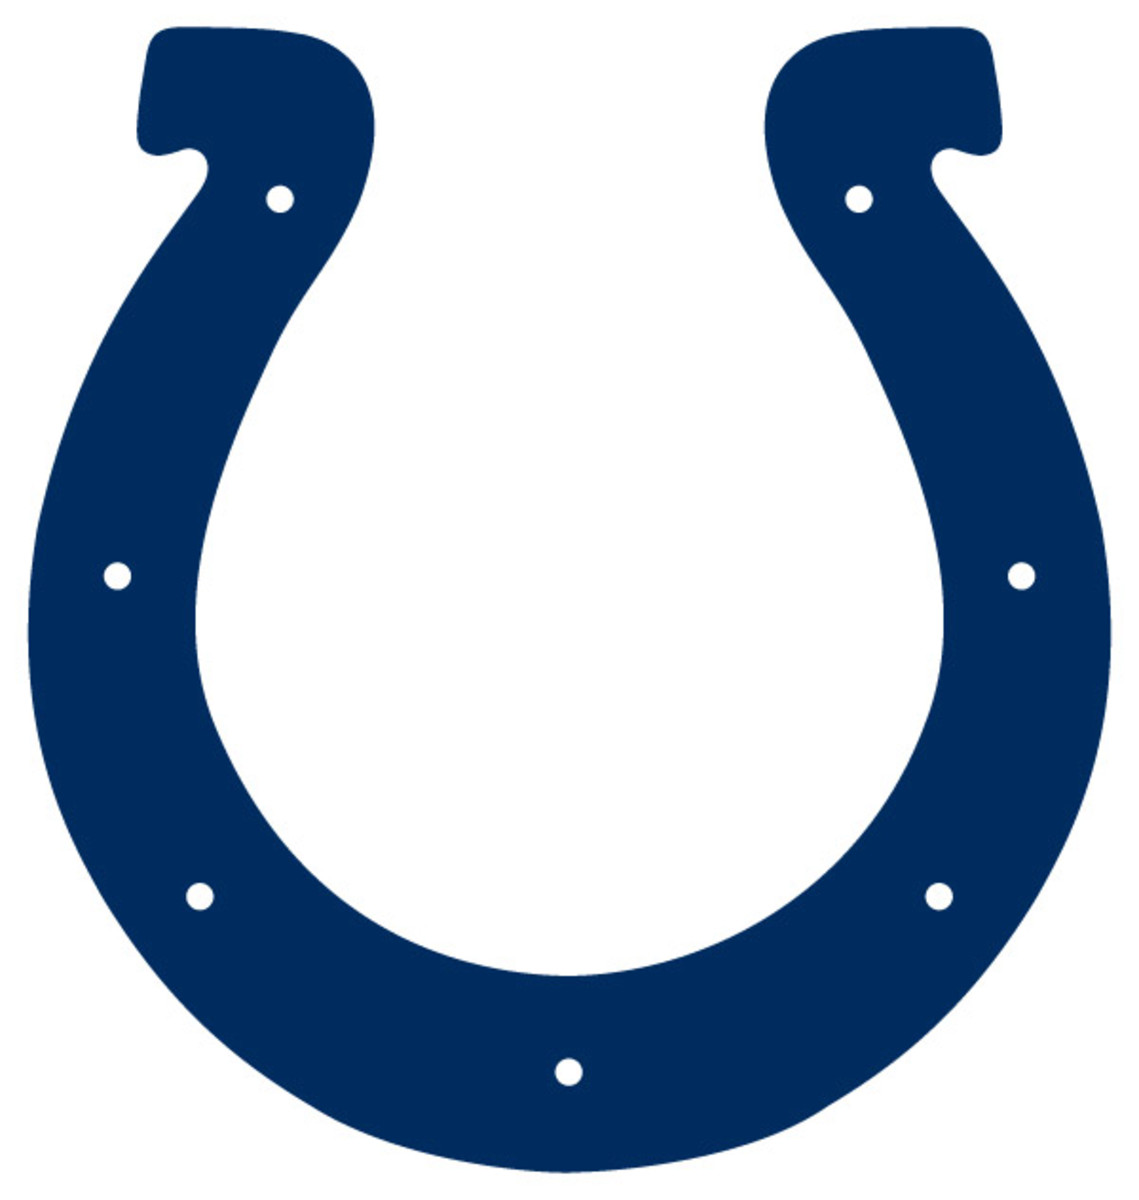 NFL Power Rankings: Colts